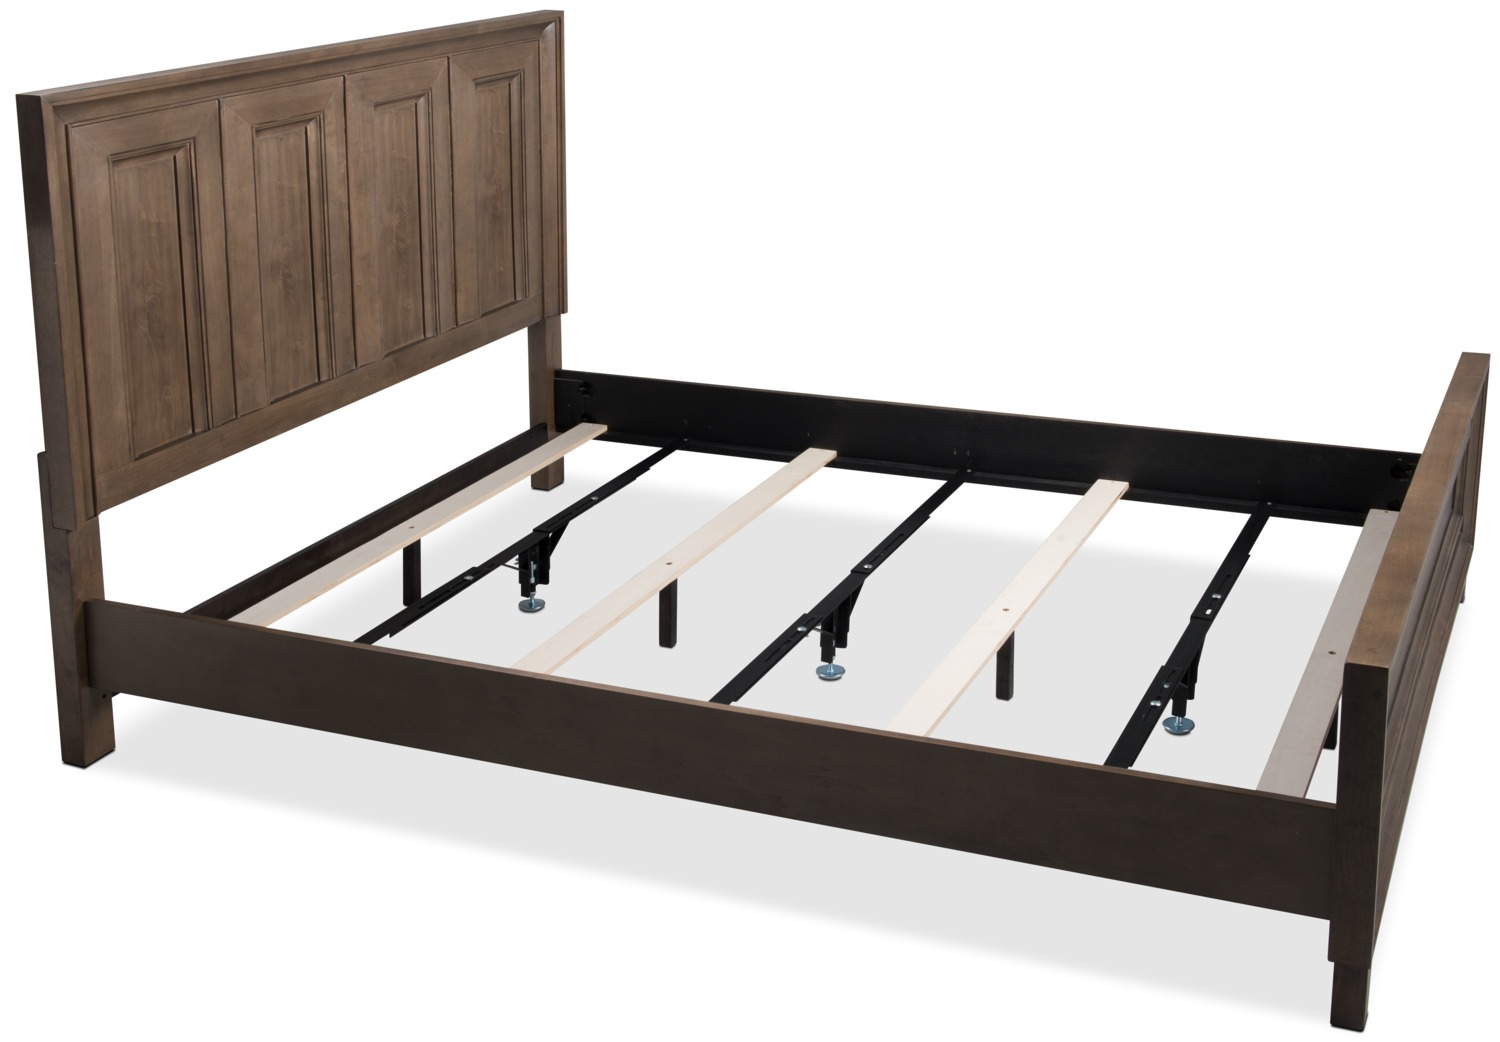 Bed frame Deluxe Full / Queen / King metal rails - set of 3 YRZAGDR